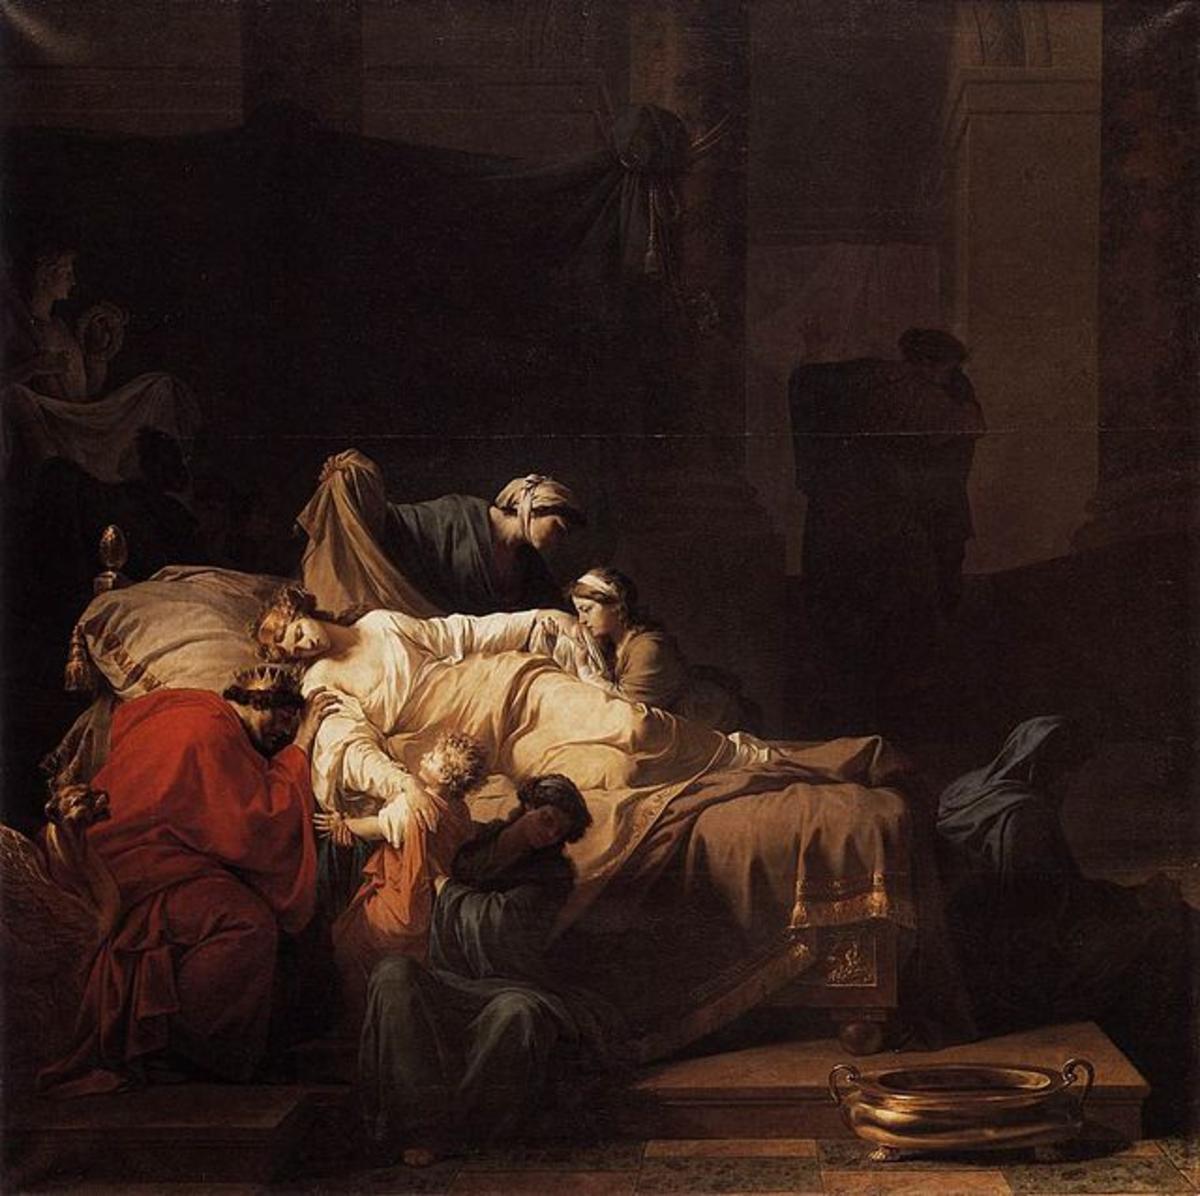 The Death of Alcestis